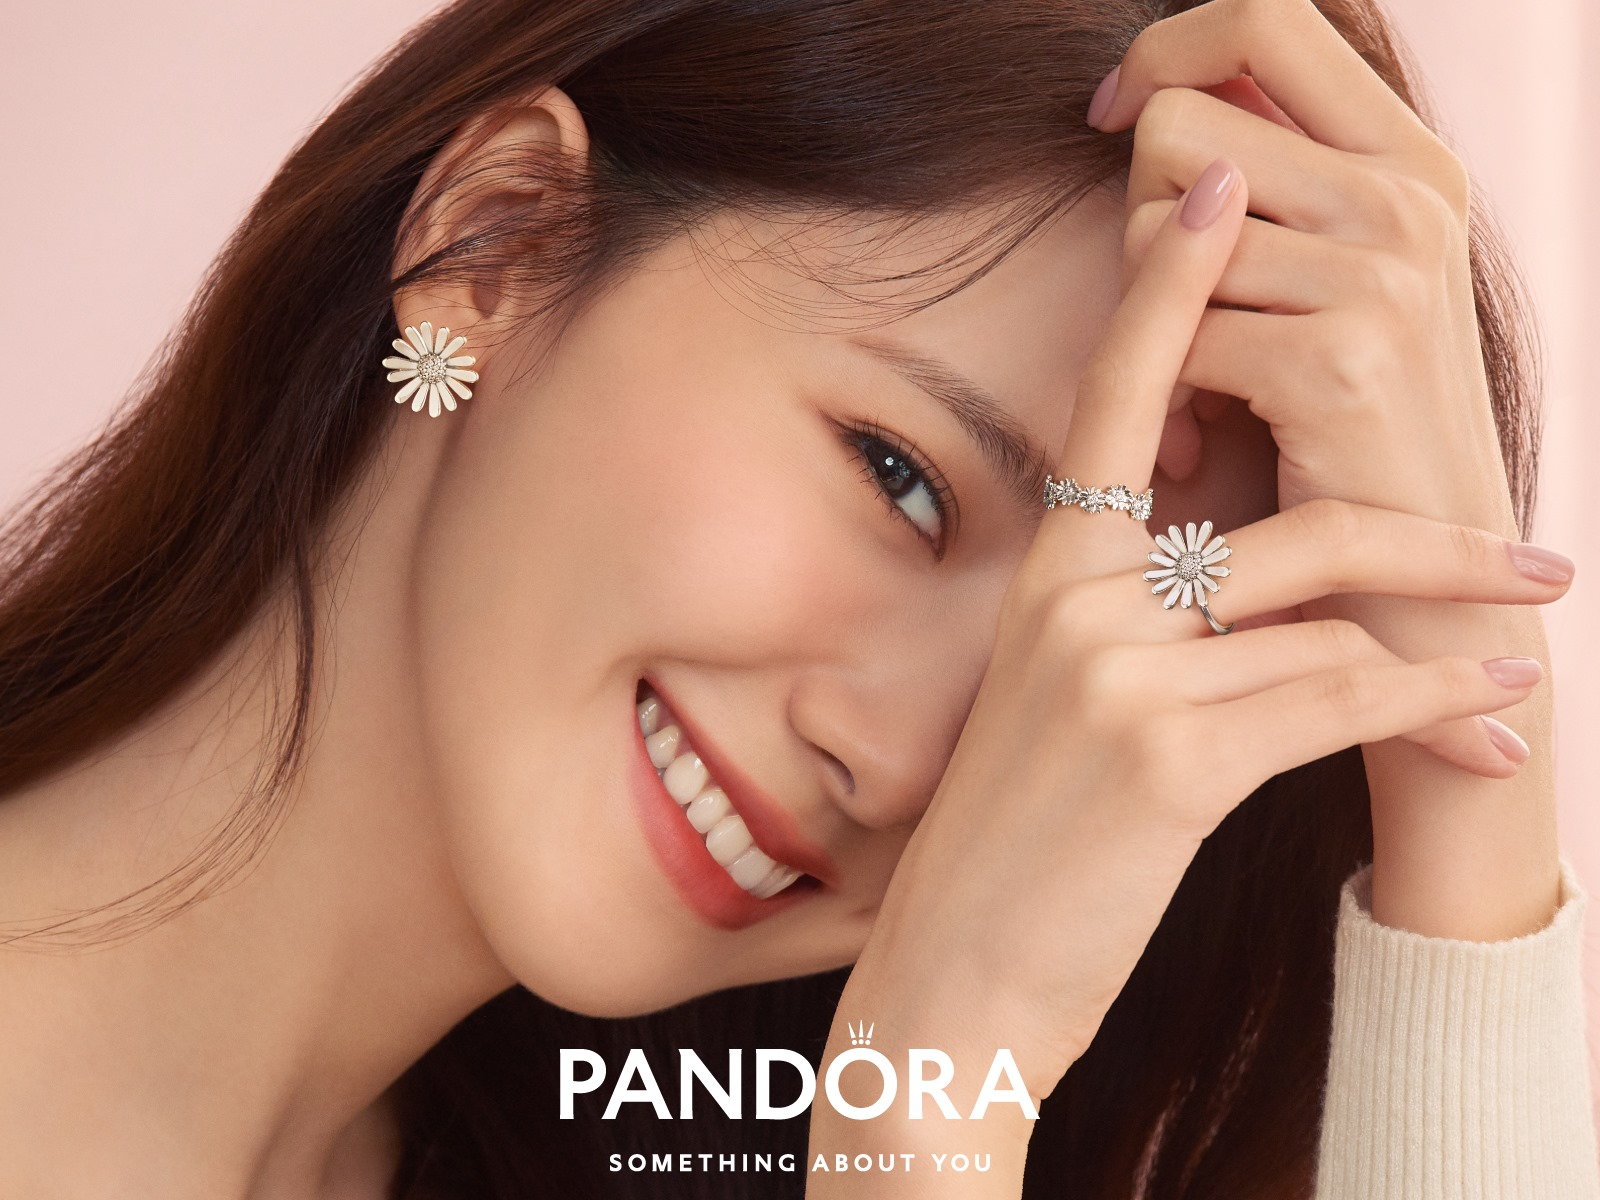 Yoona – Pandora Promotional Pictures